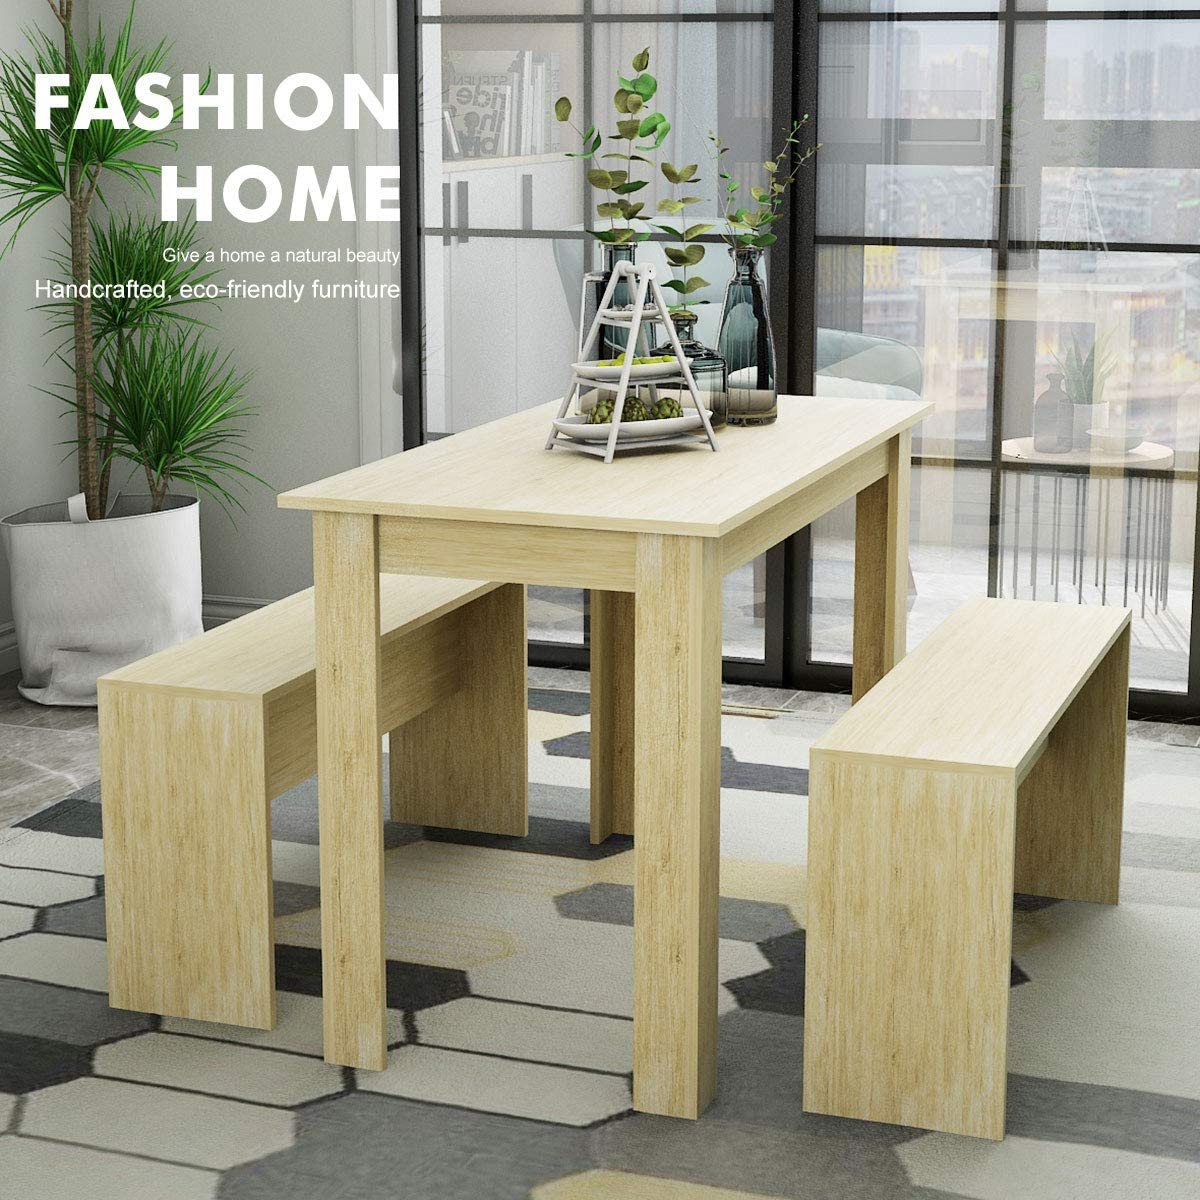 Lepak Kitchen Dining Table Sets For Small Spaces Wooden Dining Table With 2 Benches Rectangular Dinette Set For Cafe Restaurant Natural Dining Table With 2 Benches Amazon Co Uk Kitchen Home